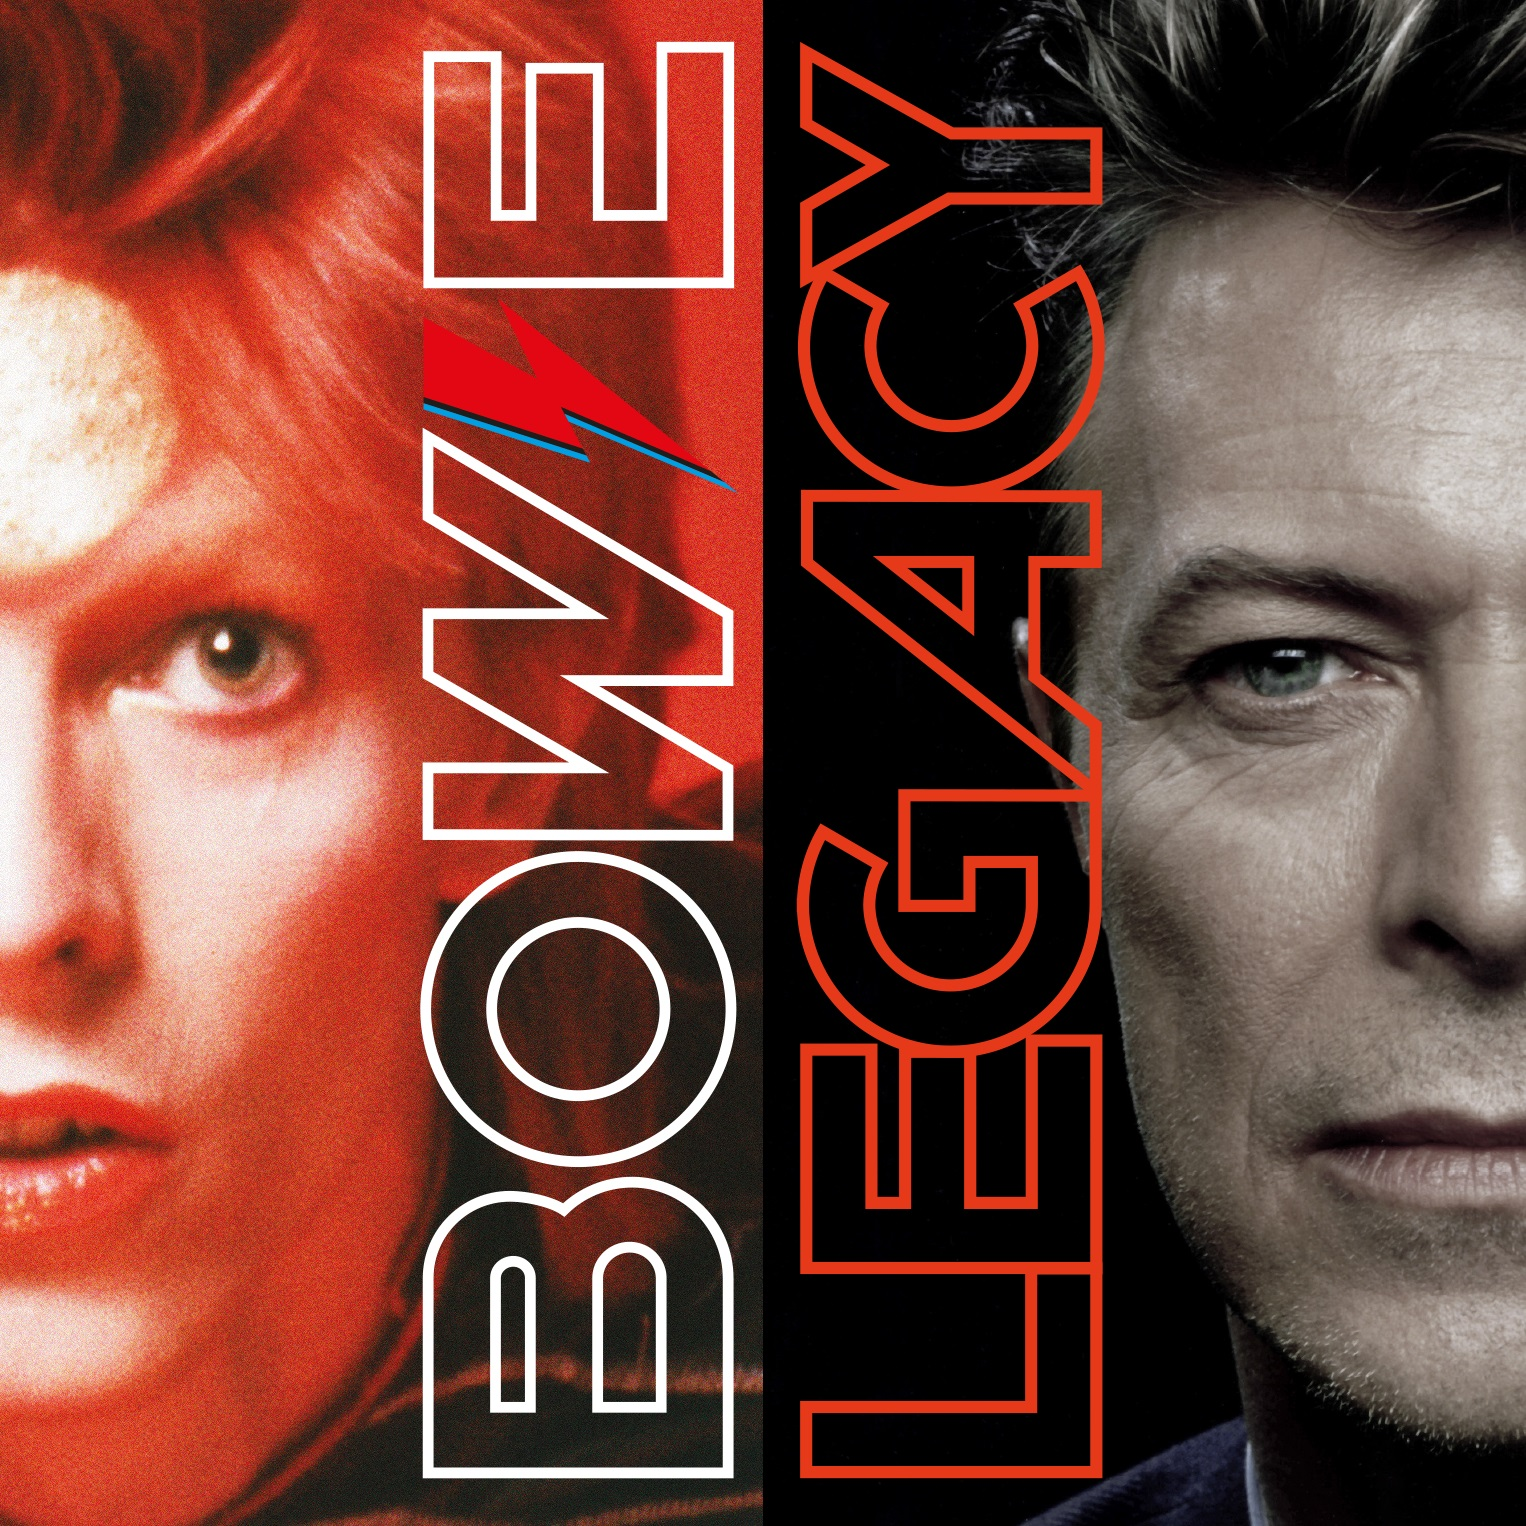 David Bowie (데이빗 보위) - [Legacy (The Very Best Of)] (2CD)